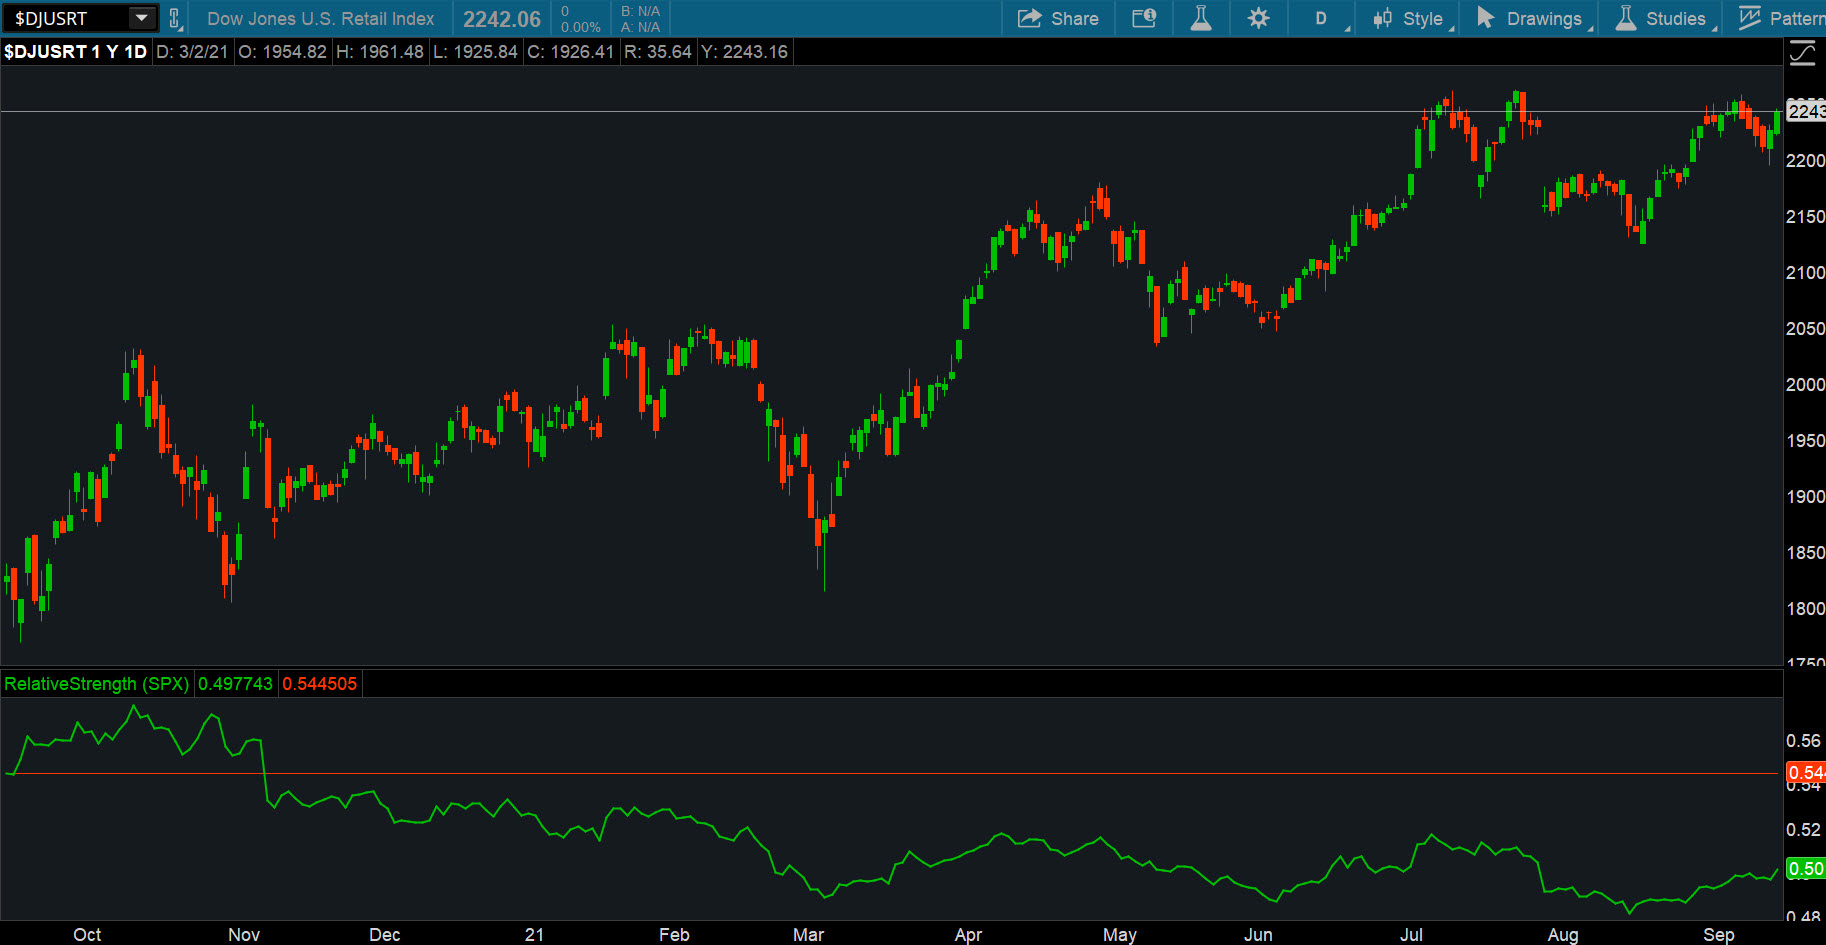 DJUSRT And S&P 500 Combined Daily Chart.